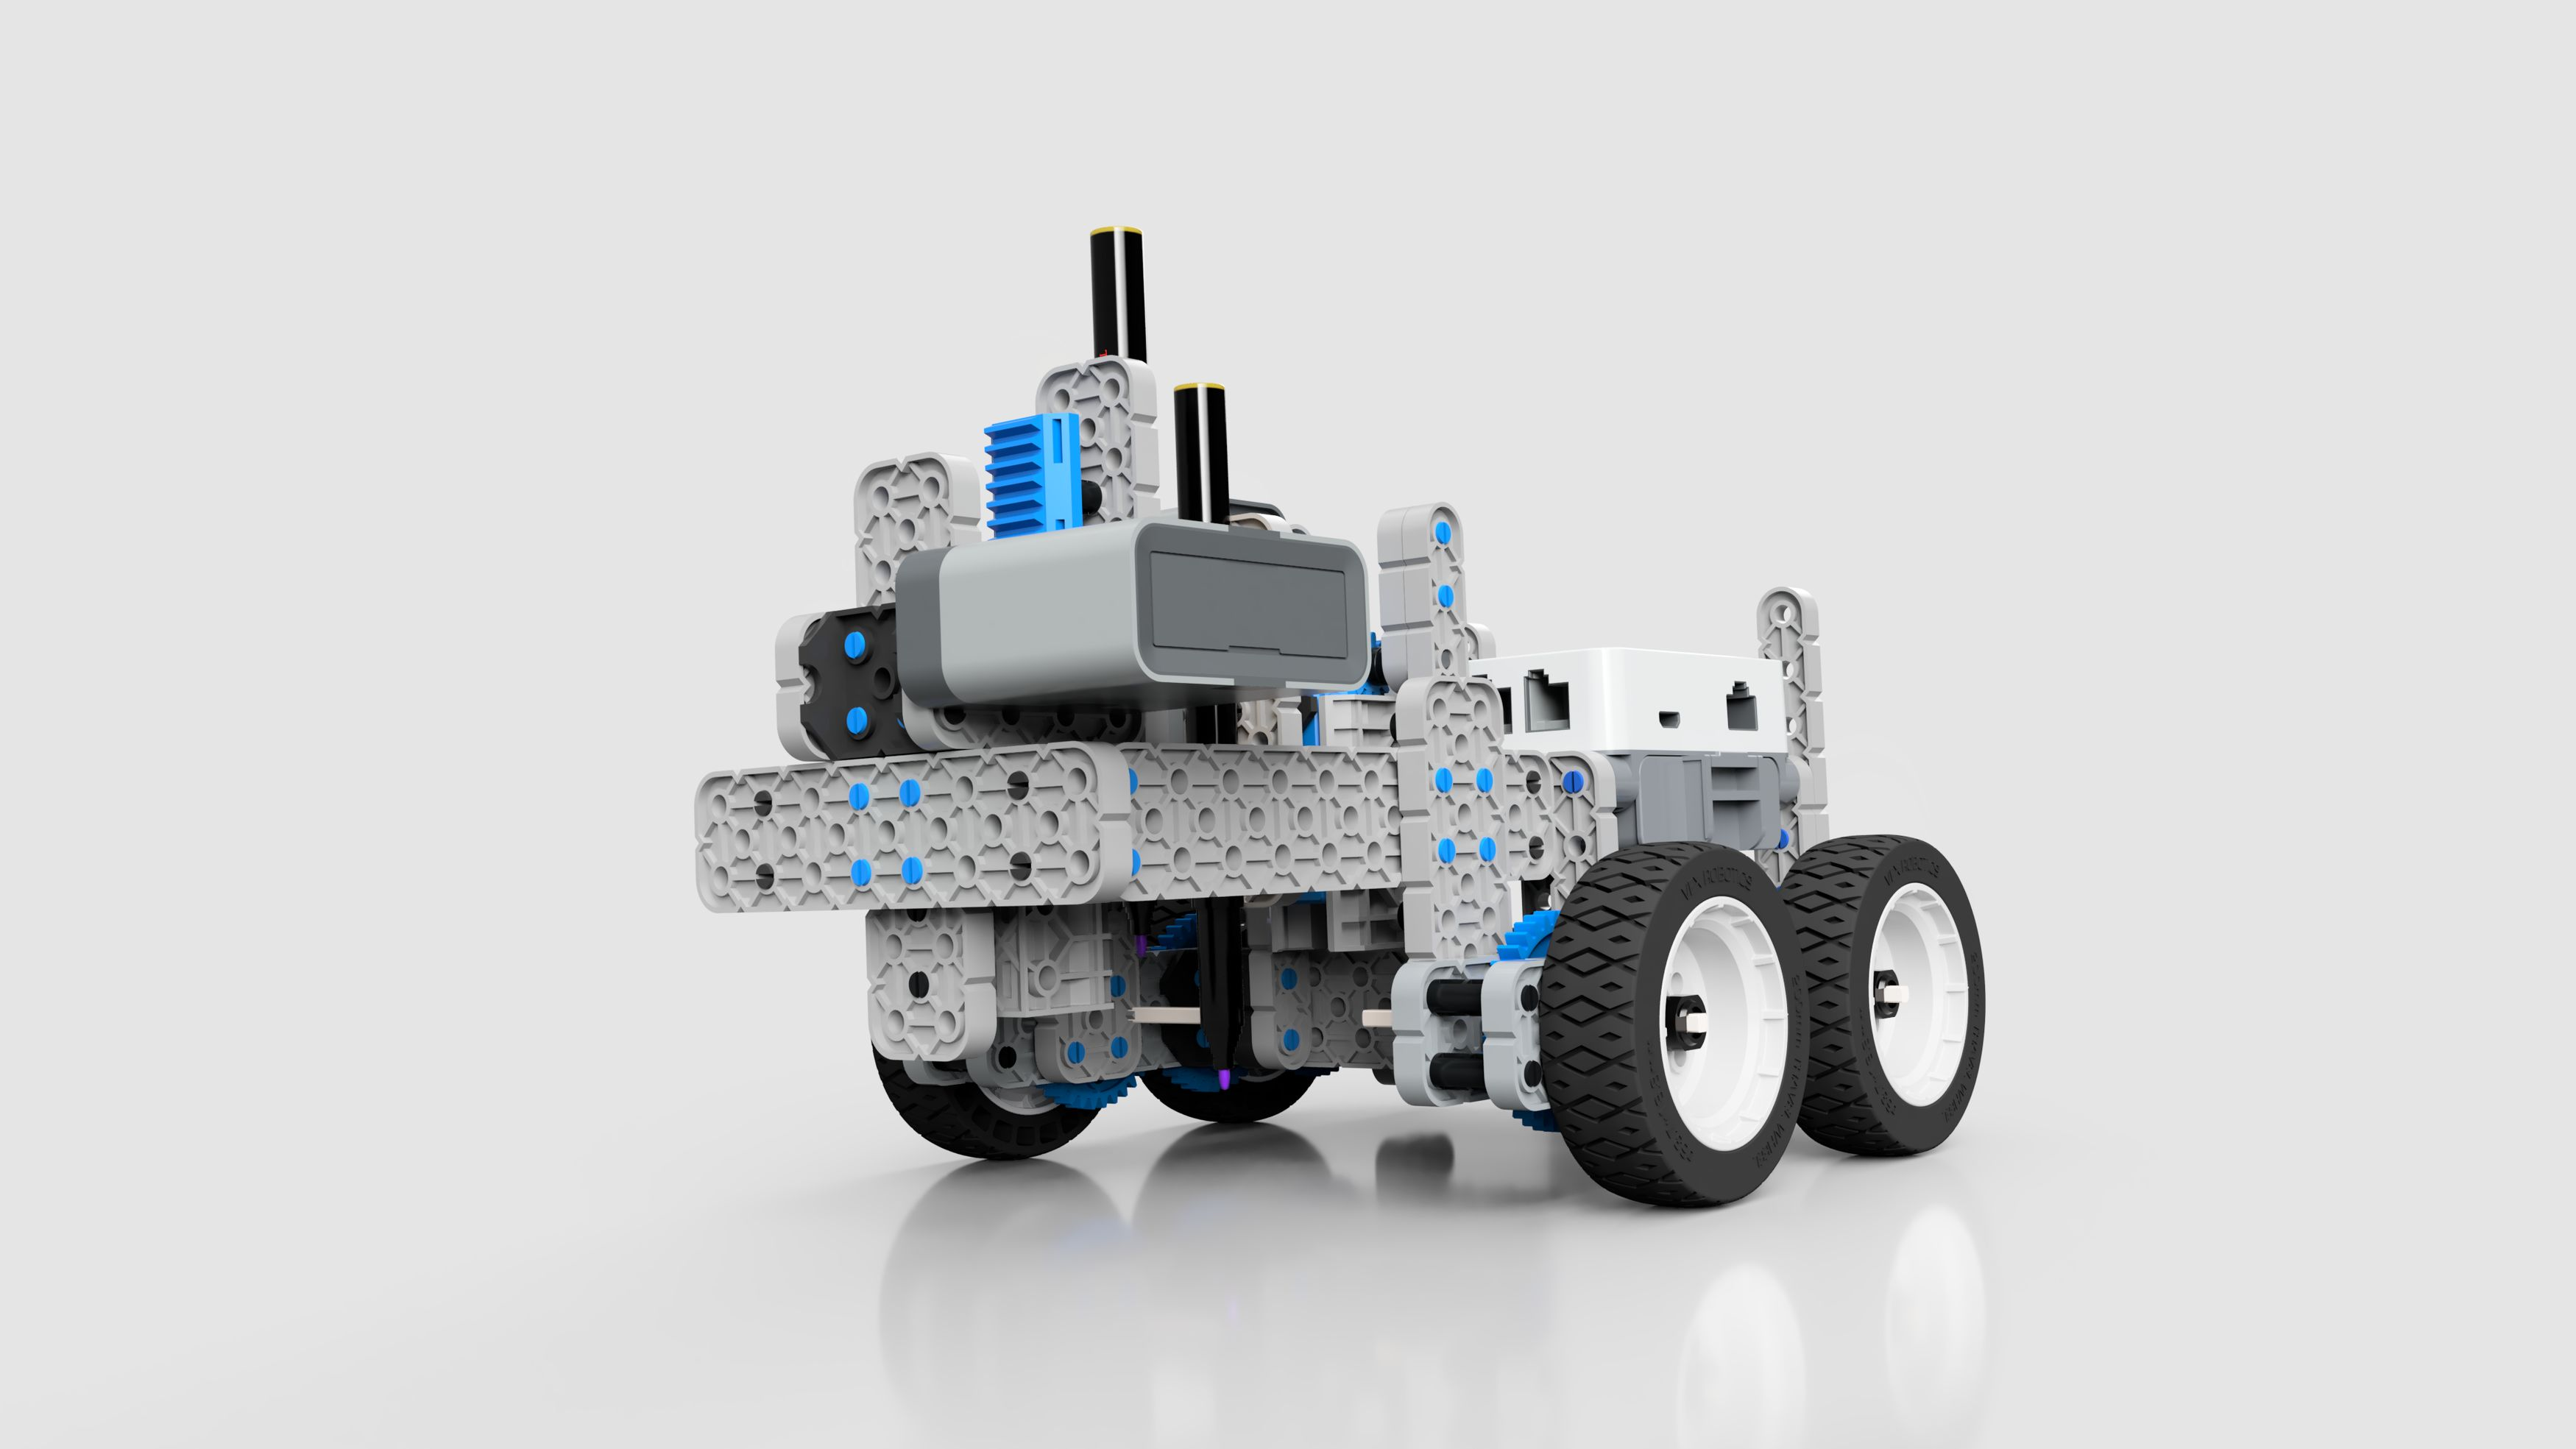 Vex-iq-robot-caneta-2020-may-24-06-09-04pm-000-customizedview14275296006-png-3500-3500